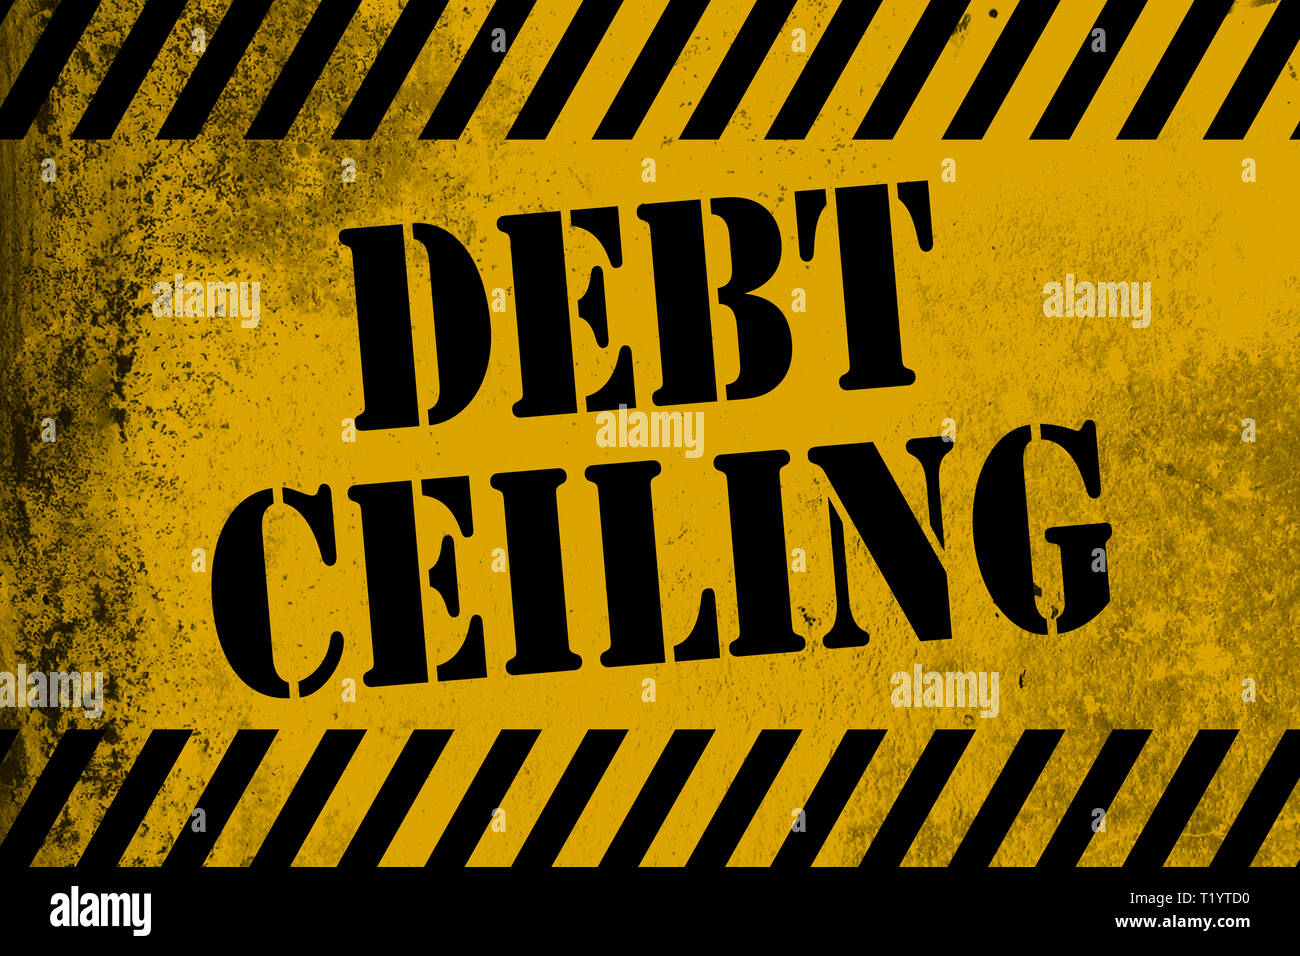 Debt ceiling sign yellow with stripes, 3D rendering - Stock Image